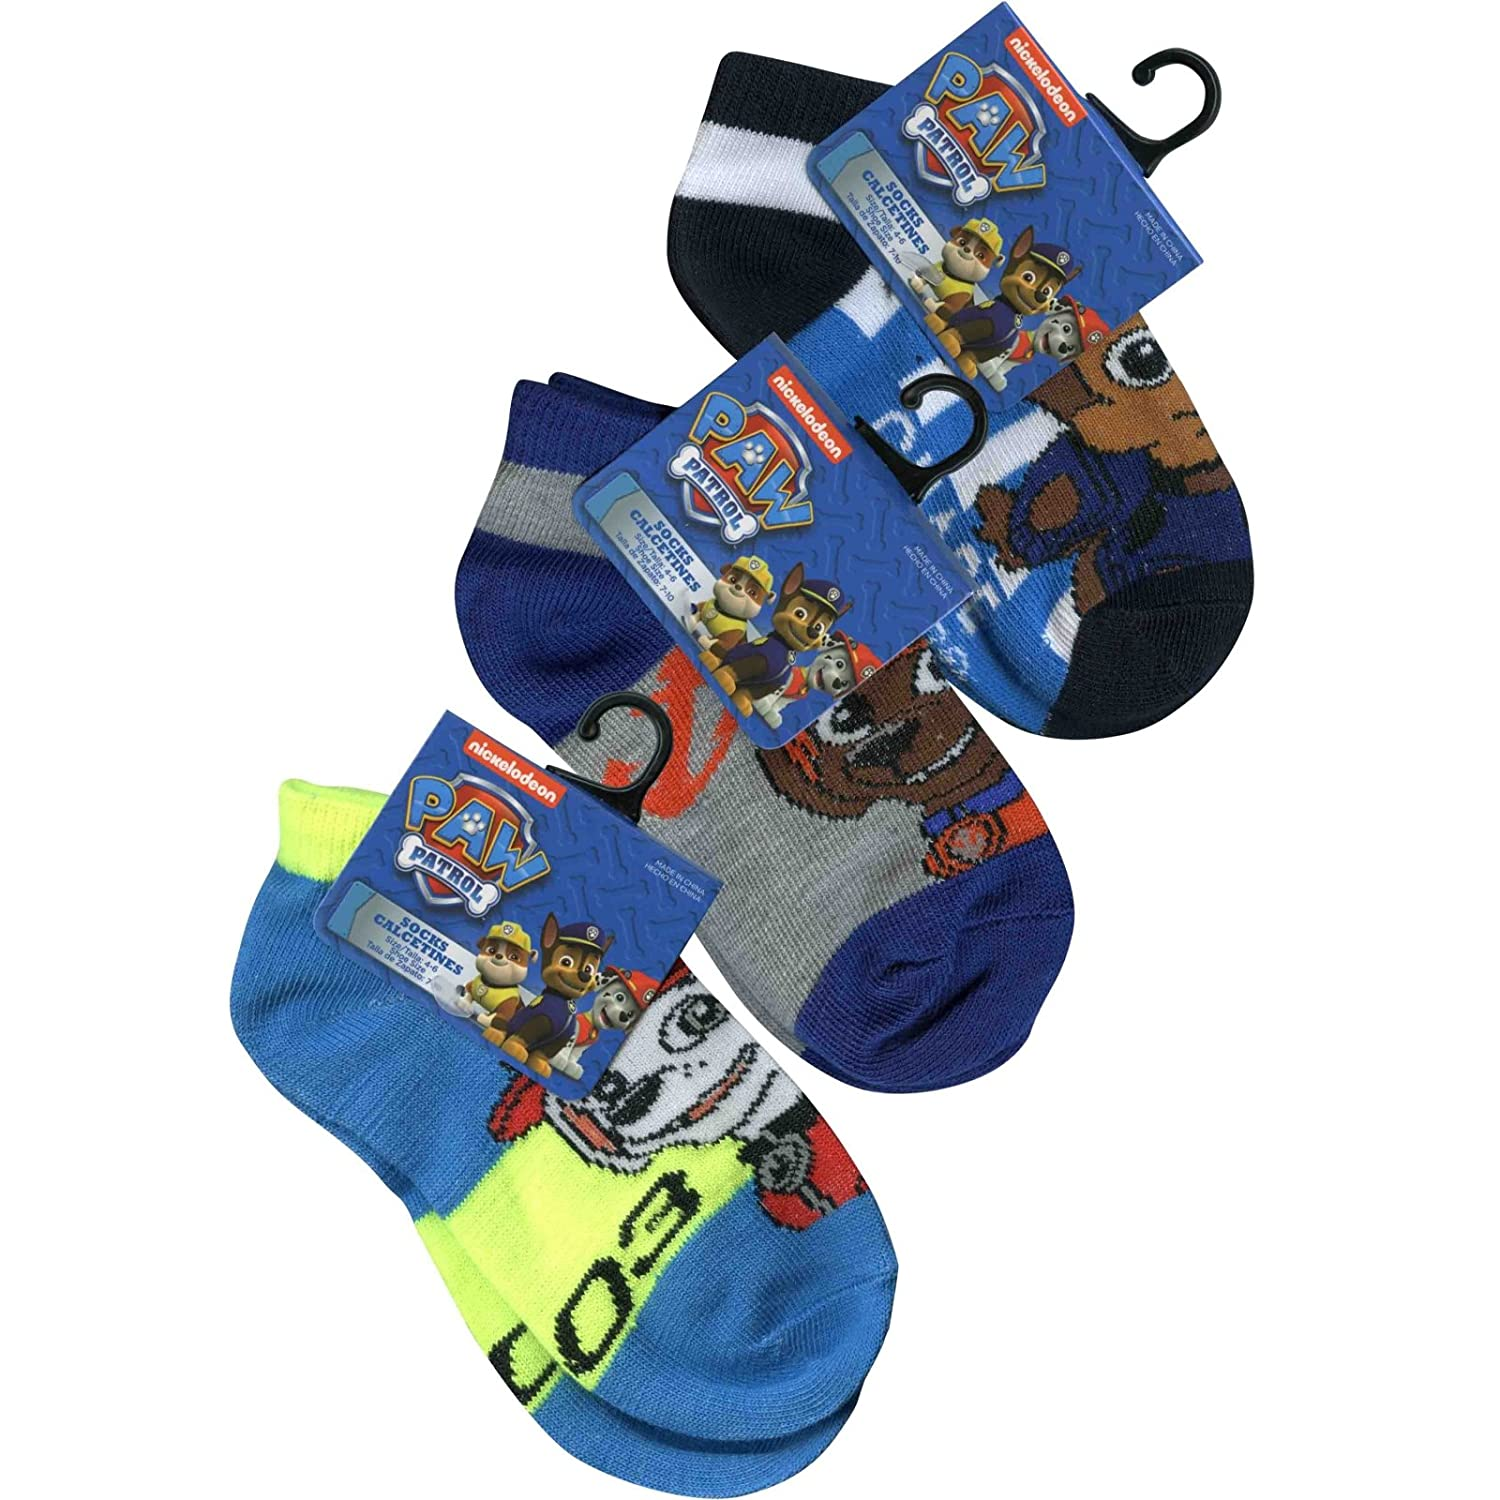 Amazon.com : (3-Pack) Nickelodeon Kids Ankle Socks No Show Style, Size 4-6 : Sports & Outdoors